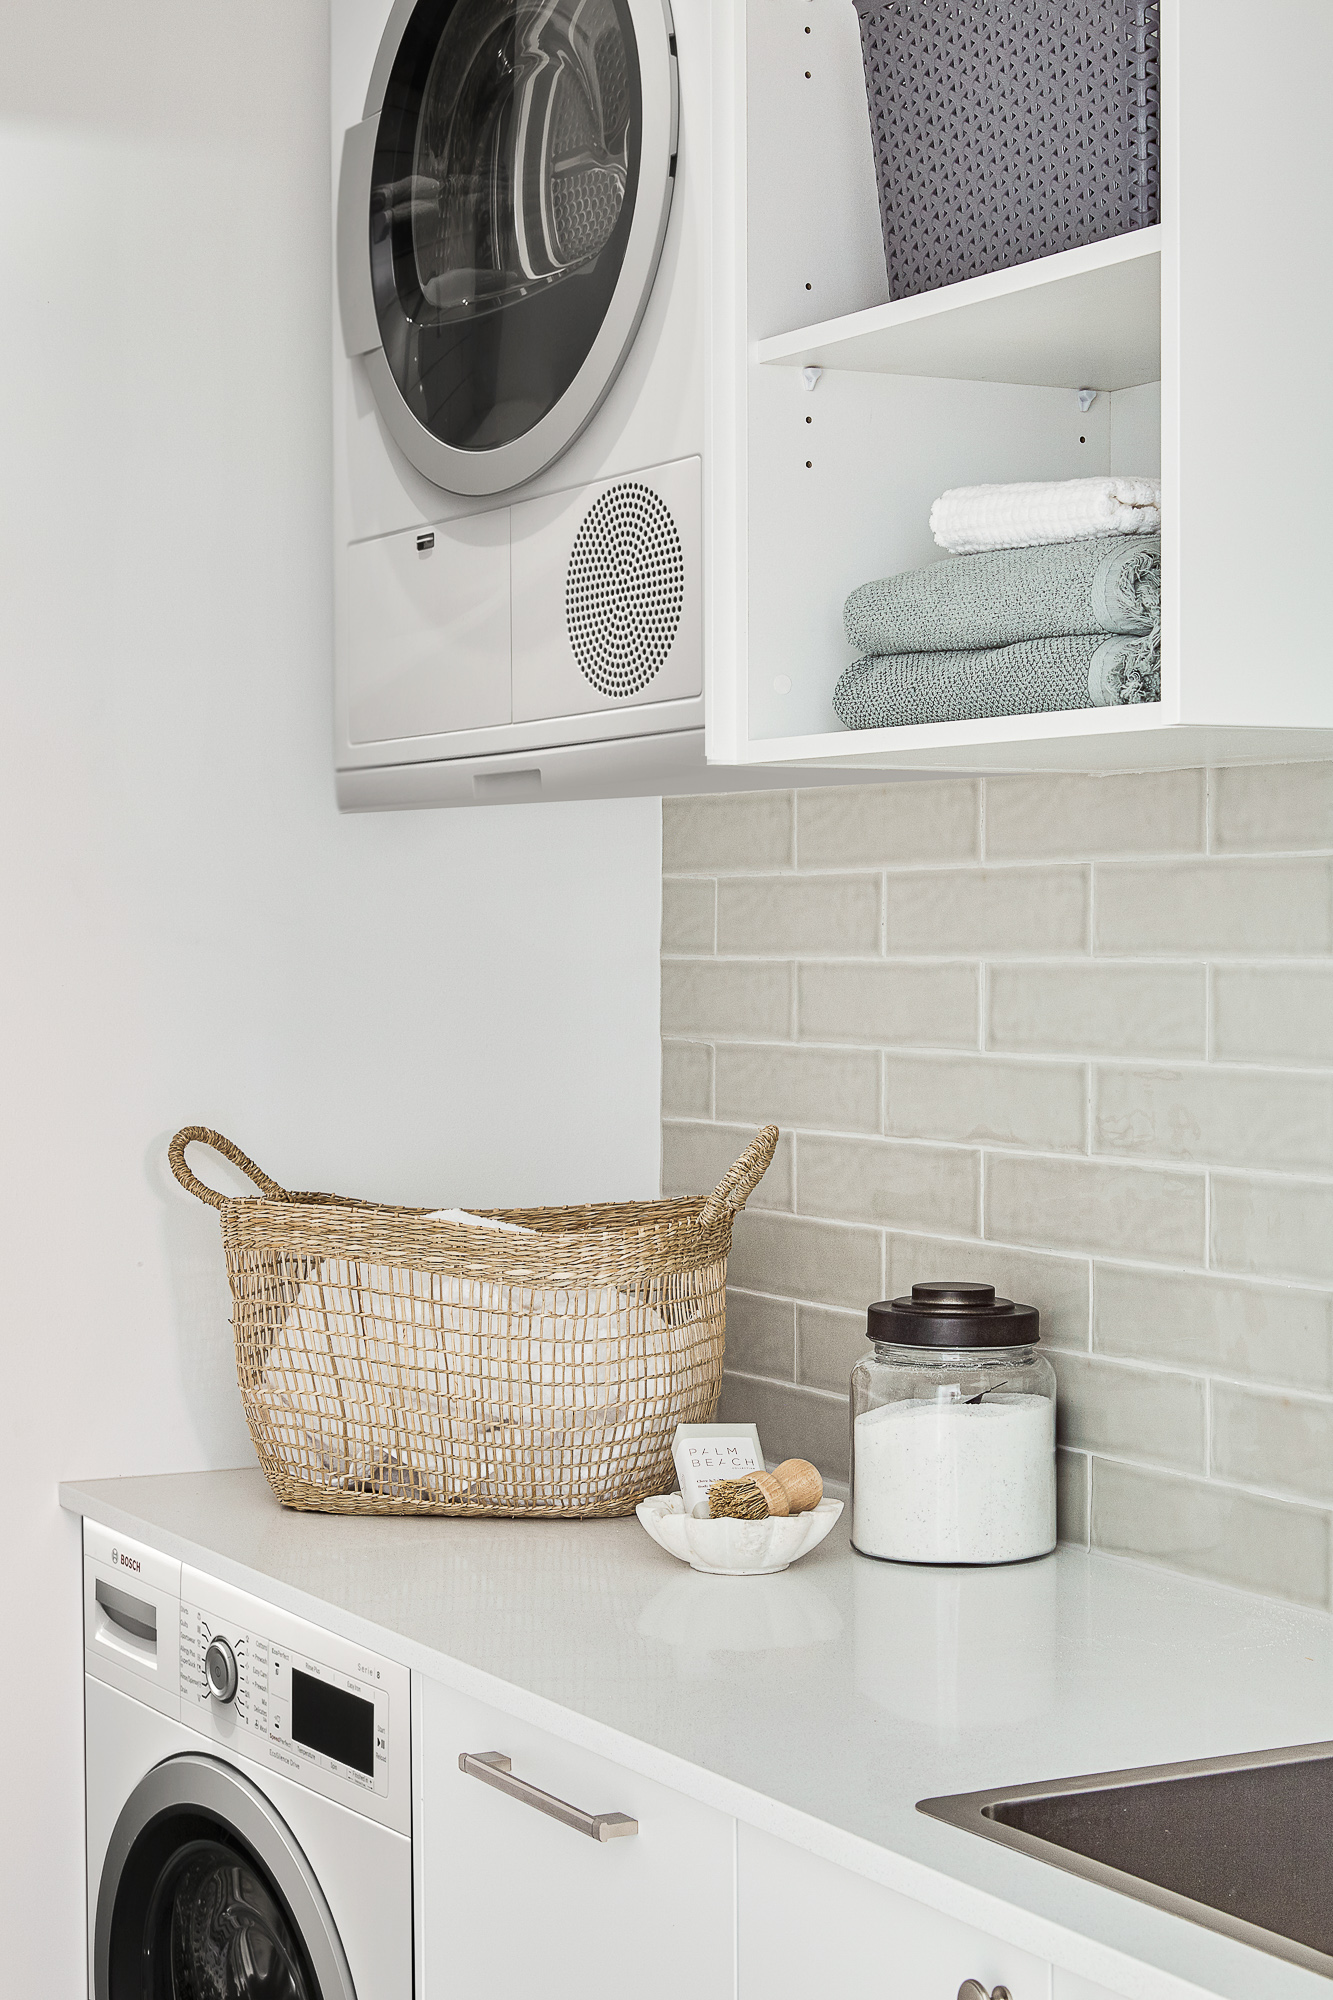 Balnei & Colina laundry renovation